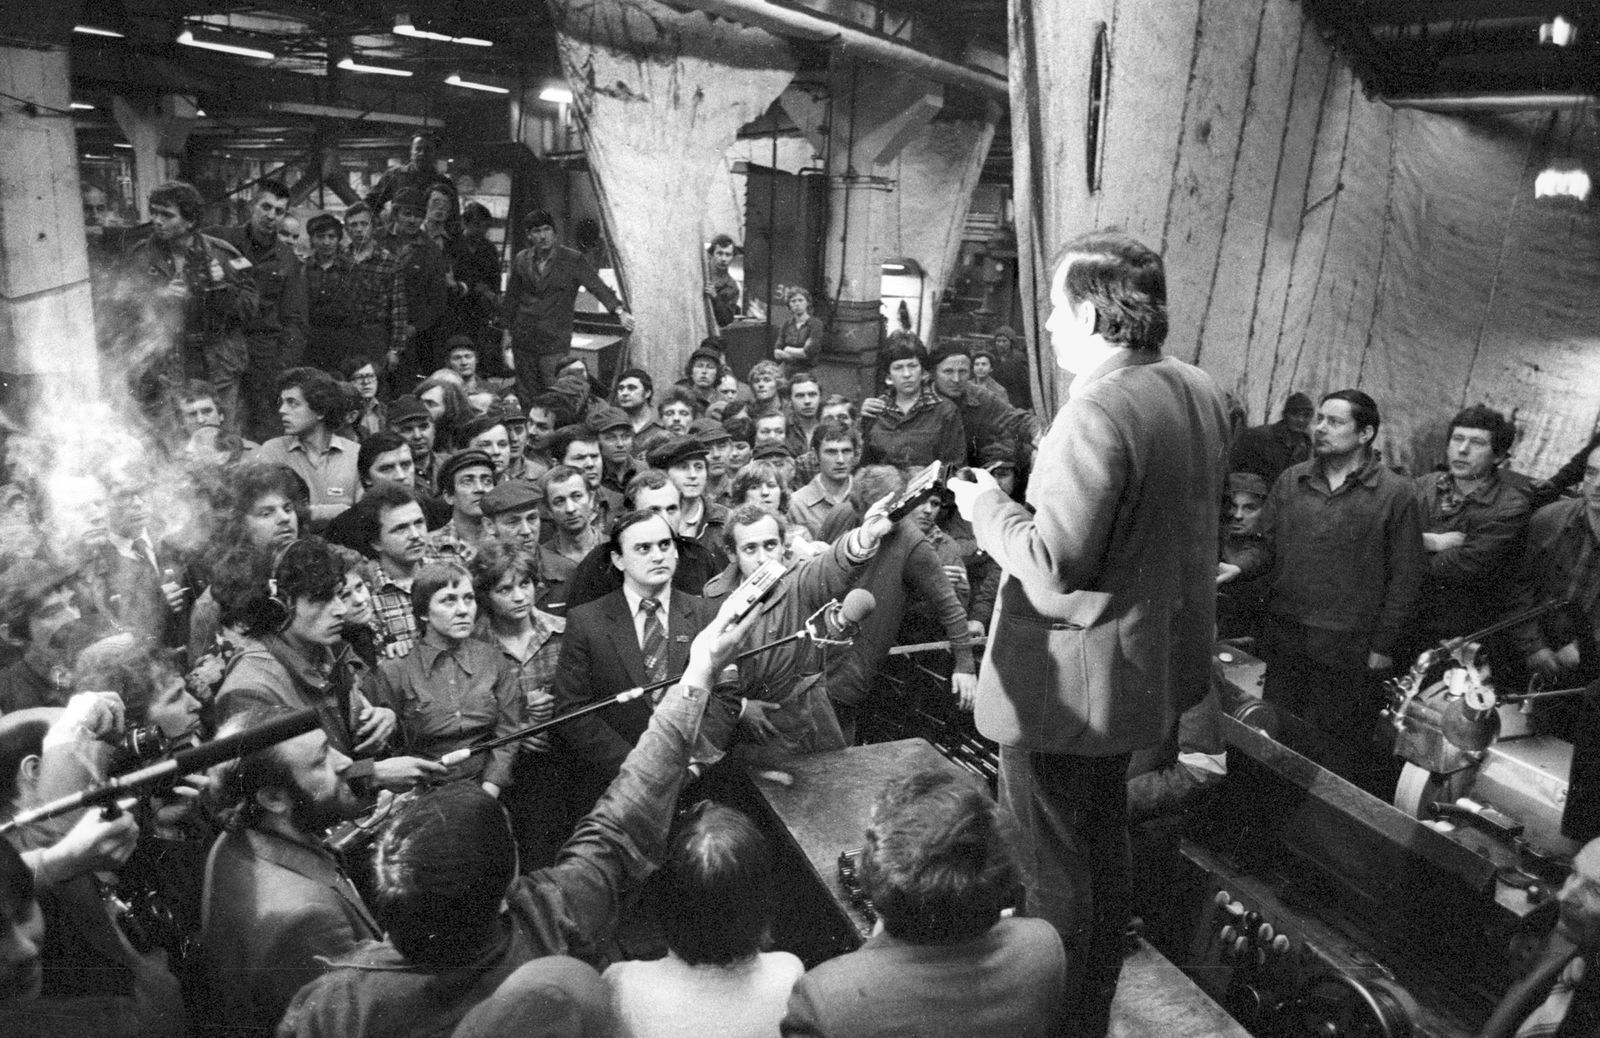 Lech Walesa during a strike at the Ursus Mechanical Works